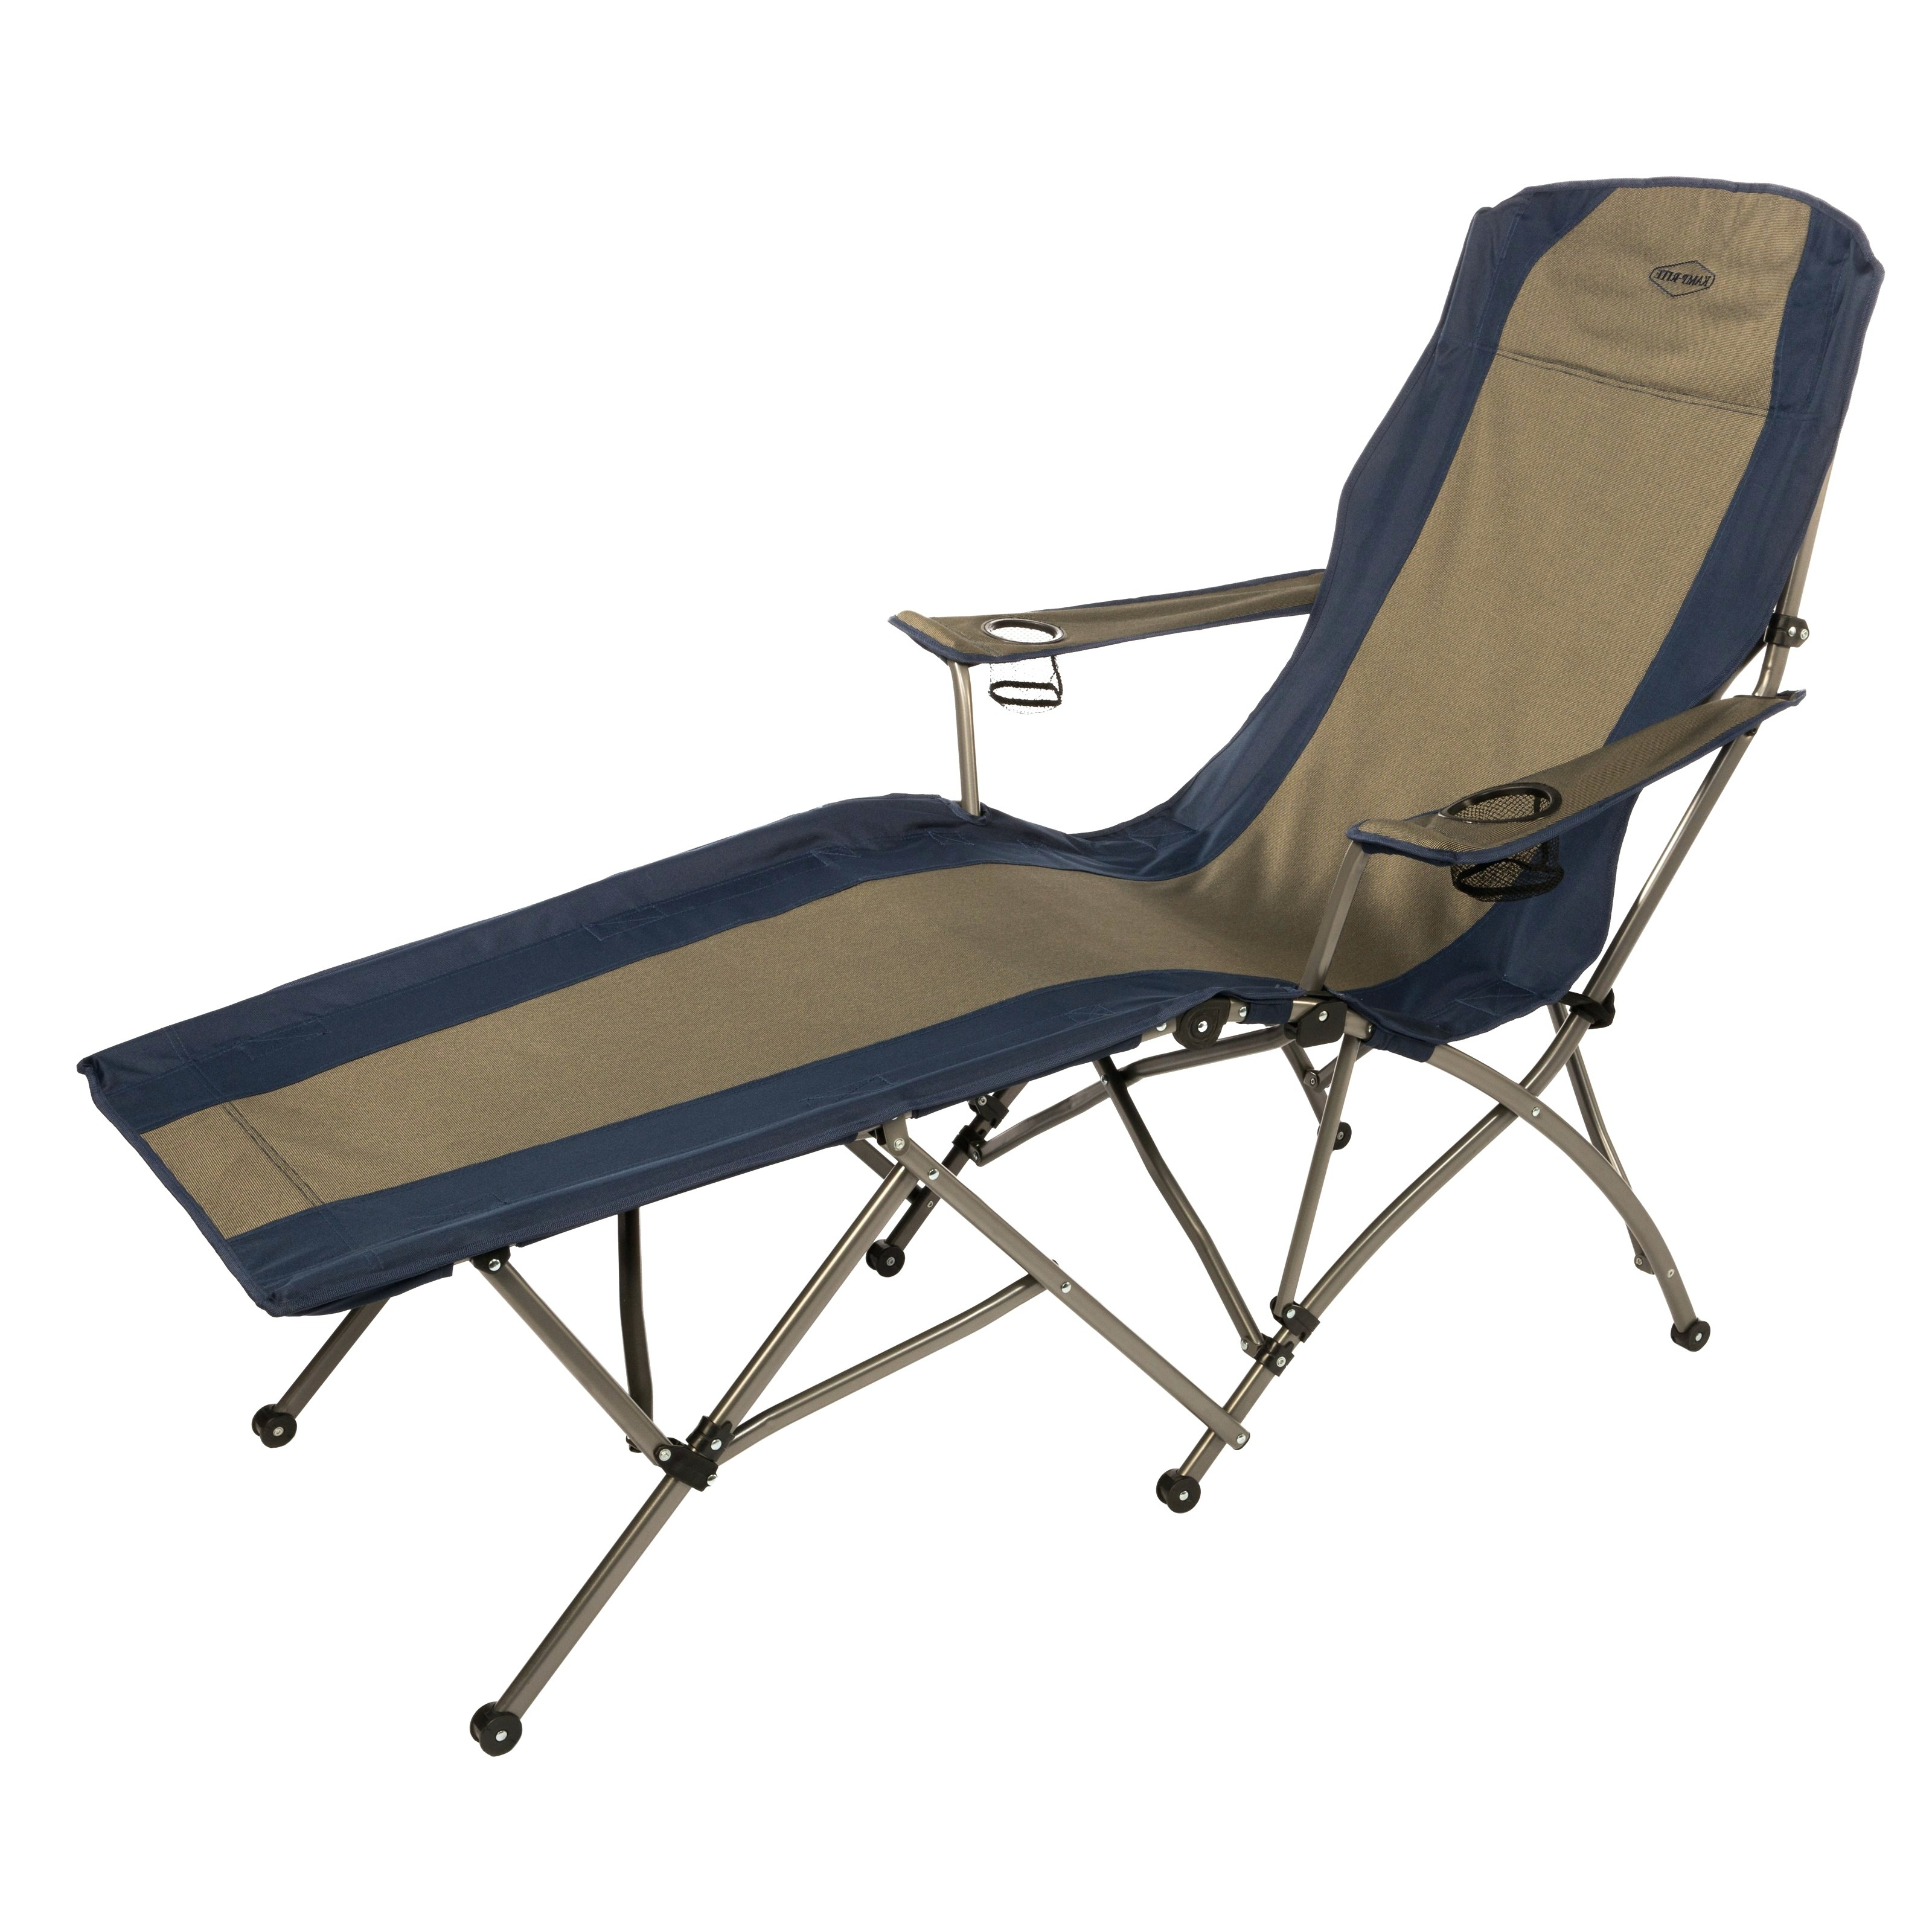 Tanning Lounge Chair With Face Hole • Lounge Chairs Ideas Within Current Chaise Lounge Chairs With Face Hole (View 5 of 15)